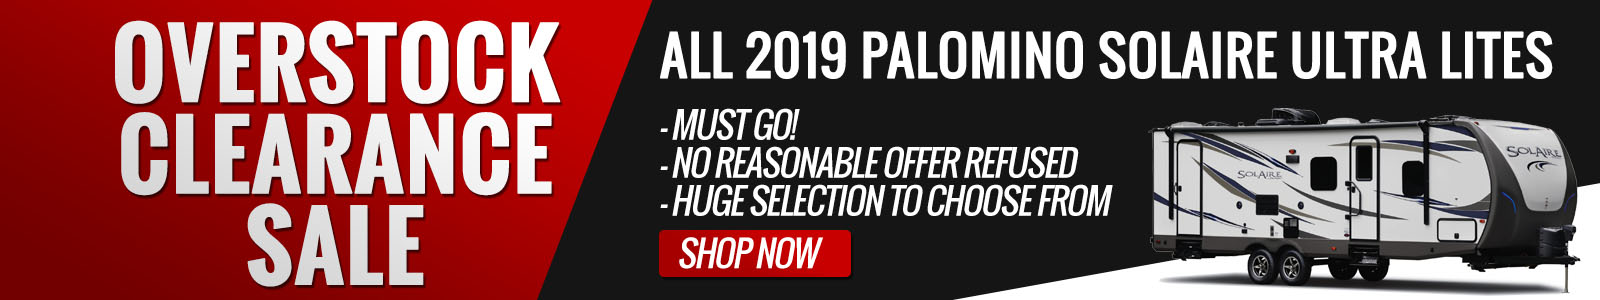 Overstock clearance sale all 2019 Palomino Solaire Ultra Lites